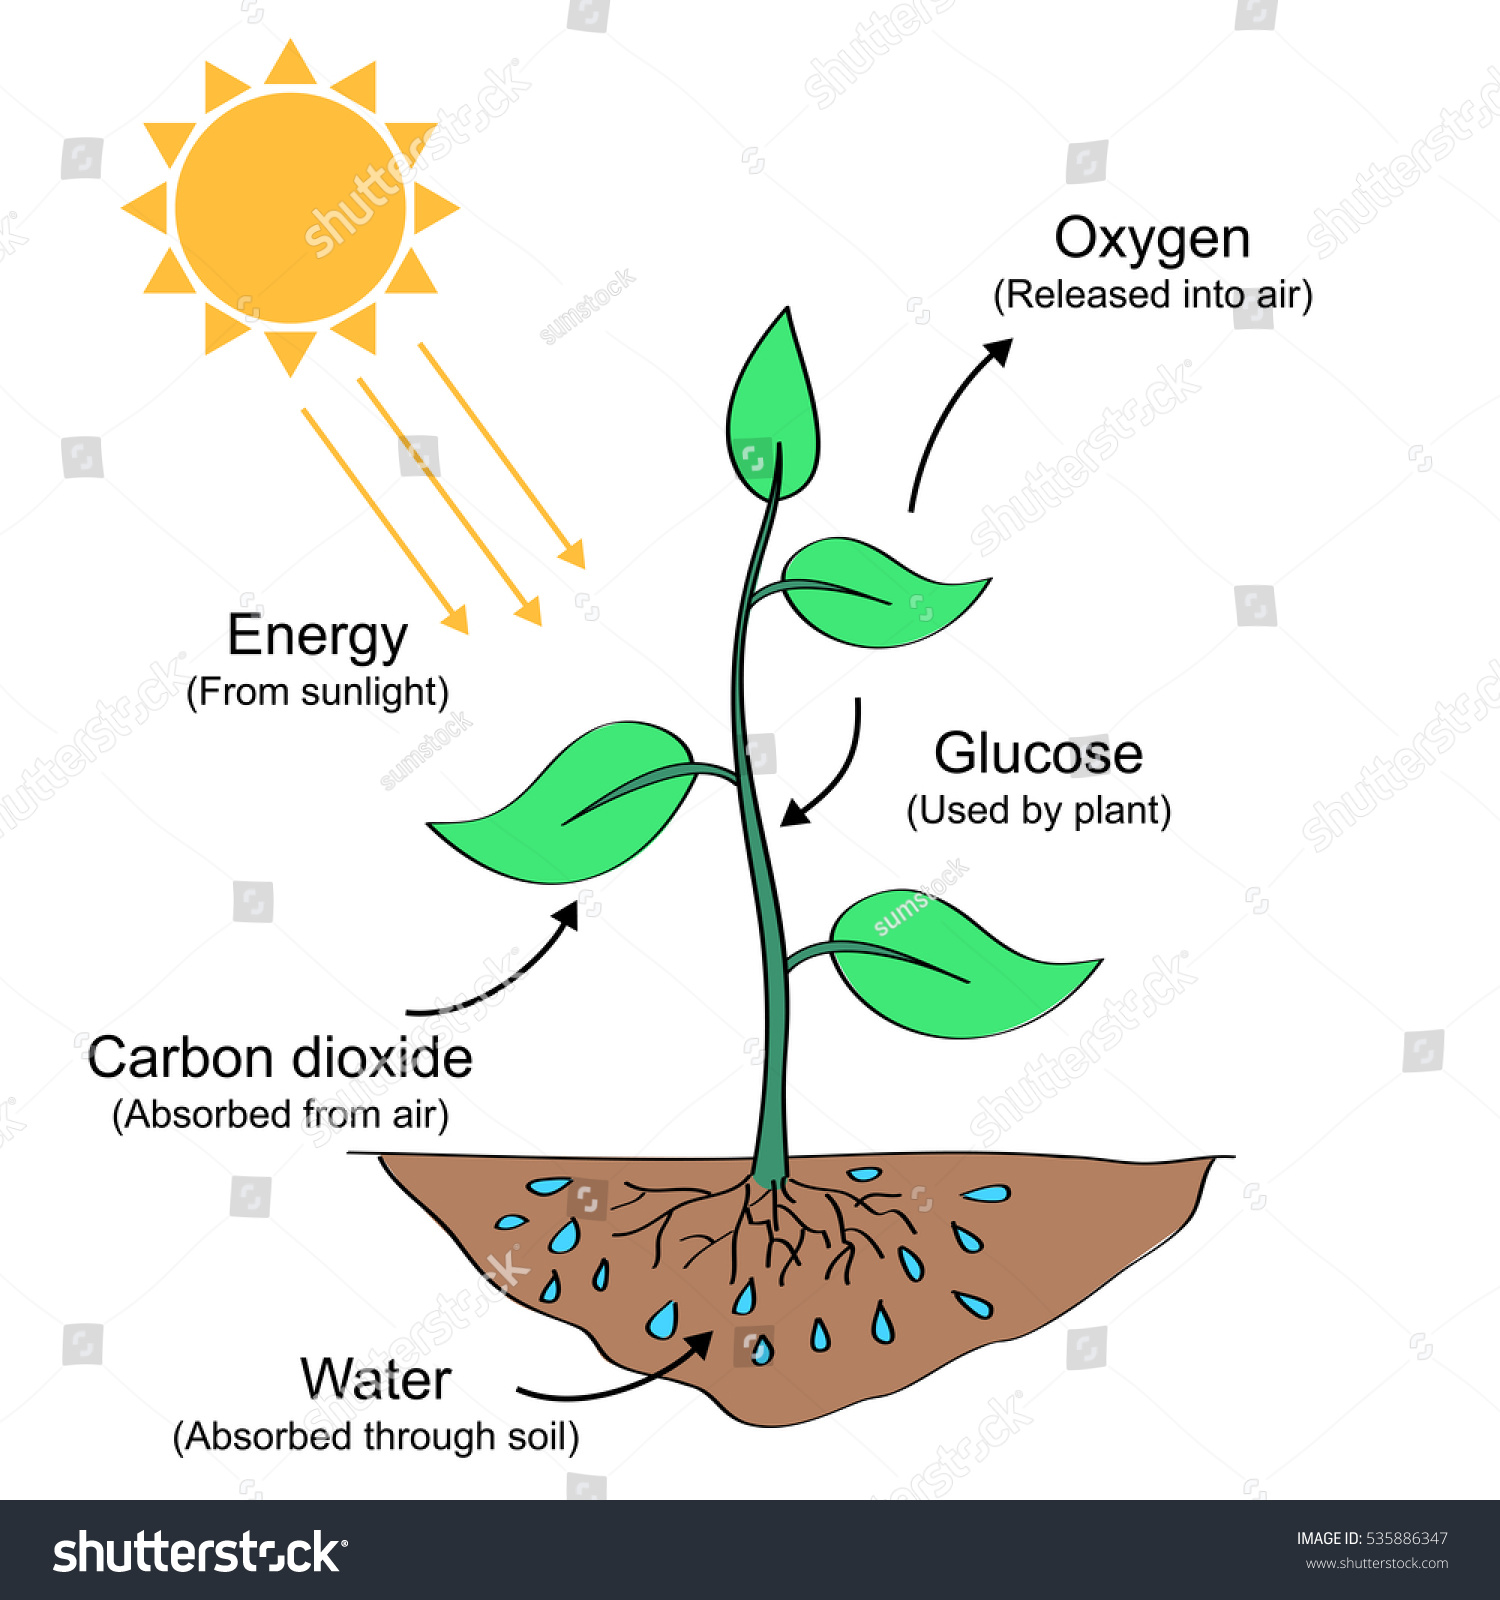 draw a diagram of photosynthesis 2002 chevy impala engine process labelled illustration stock